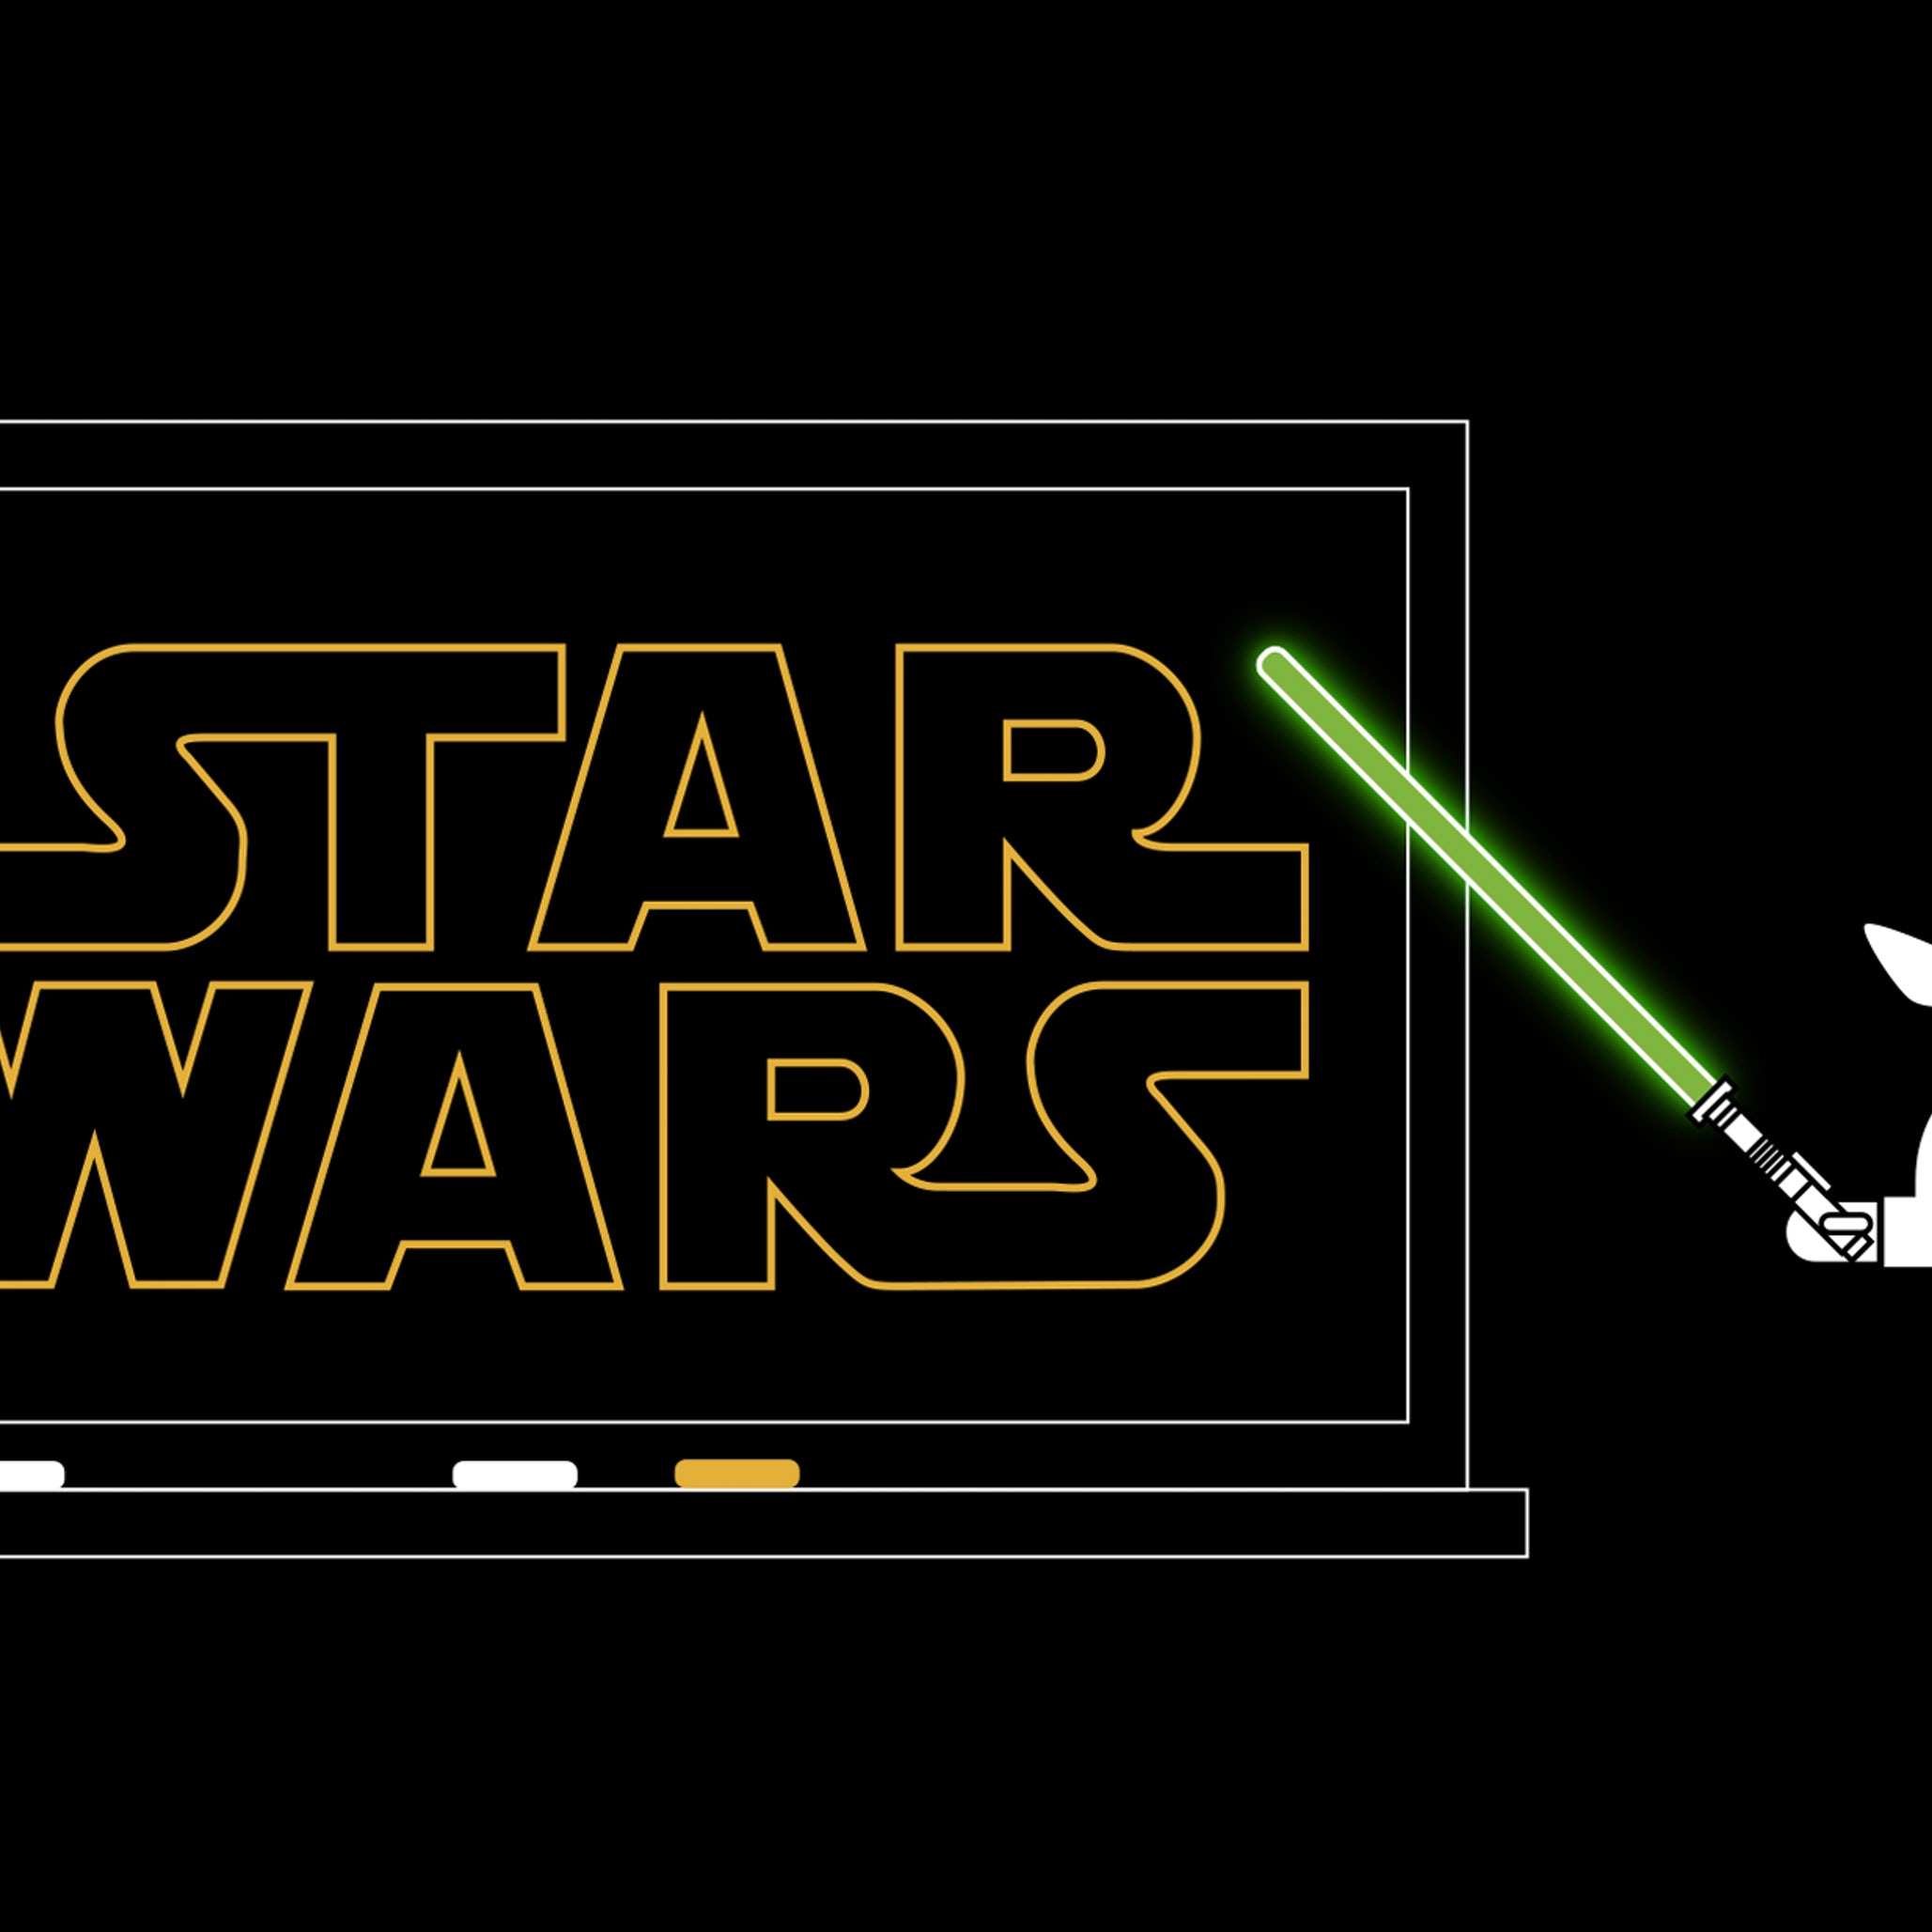 Star Wars Logos: The evolution of a film icon.